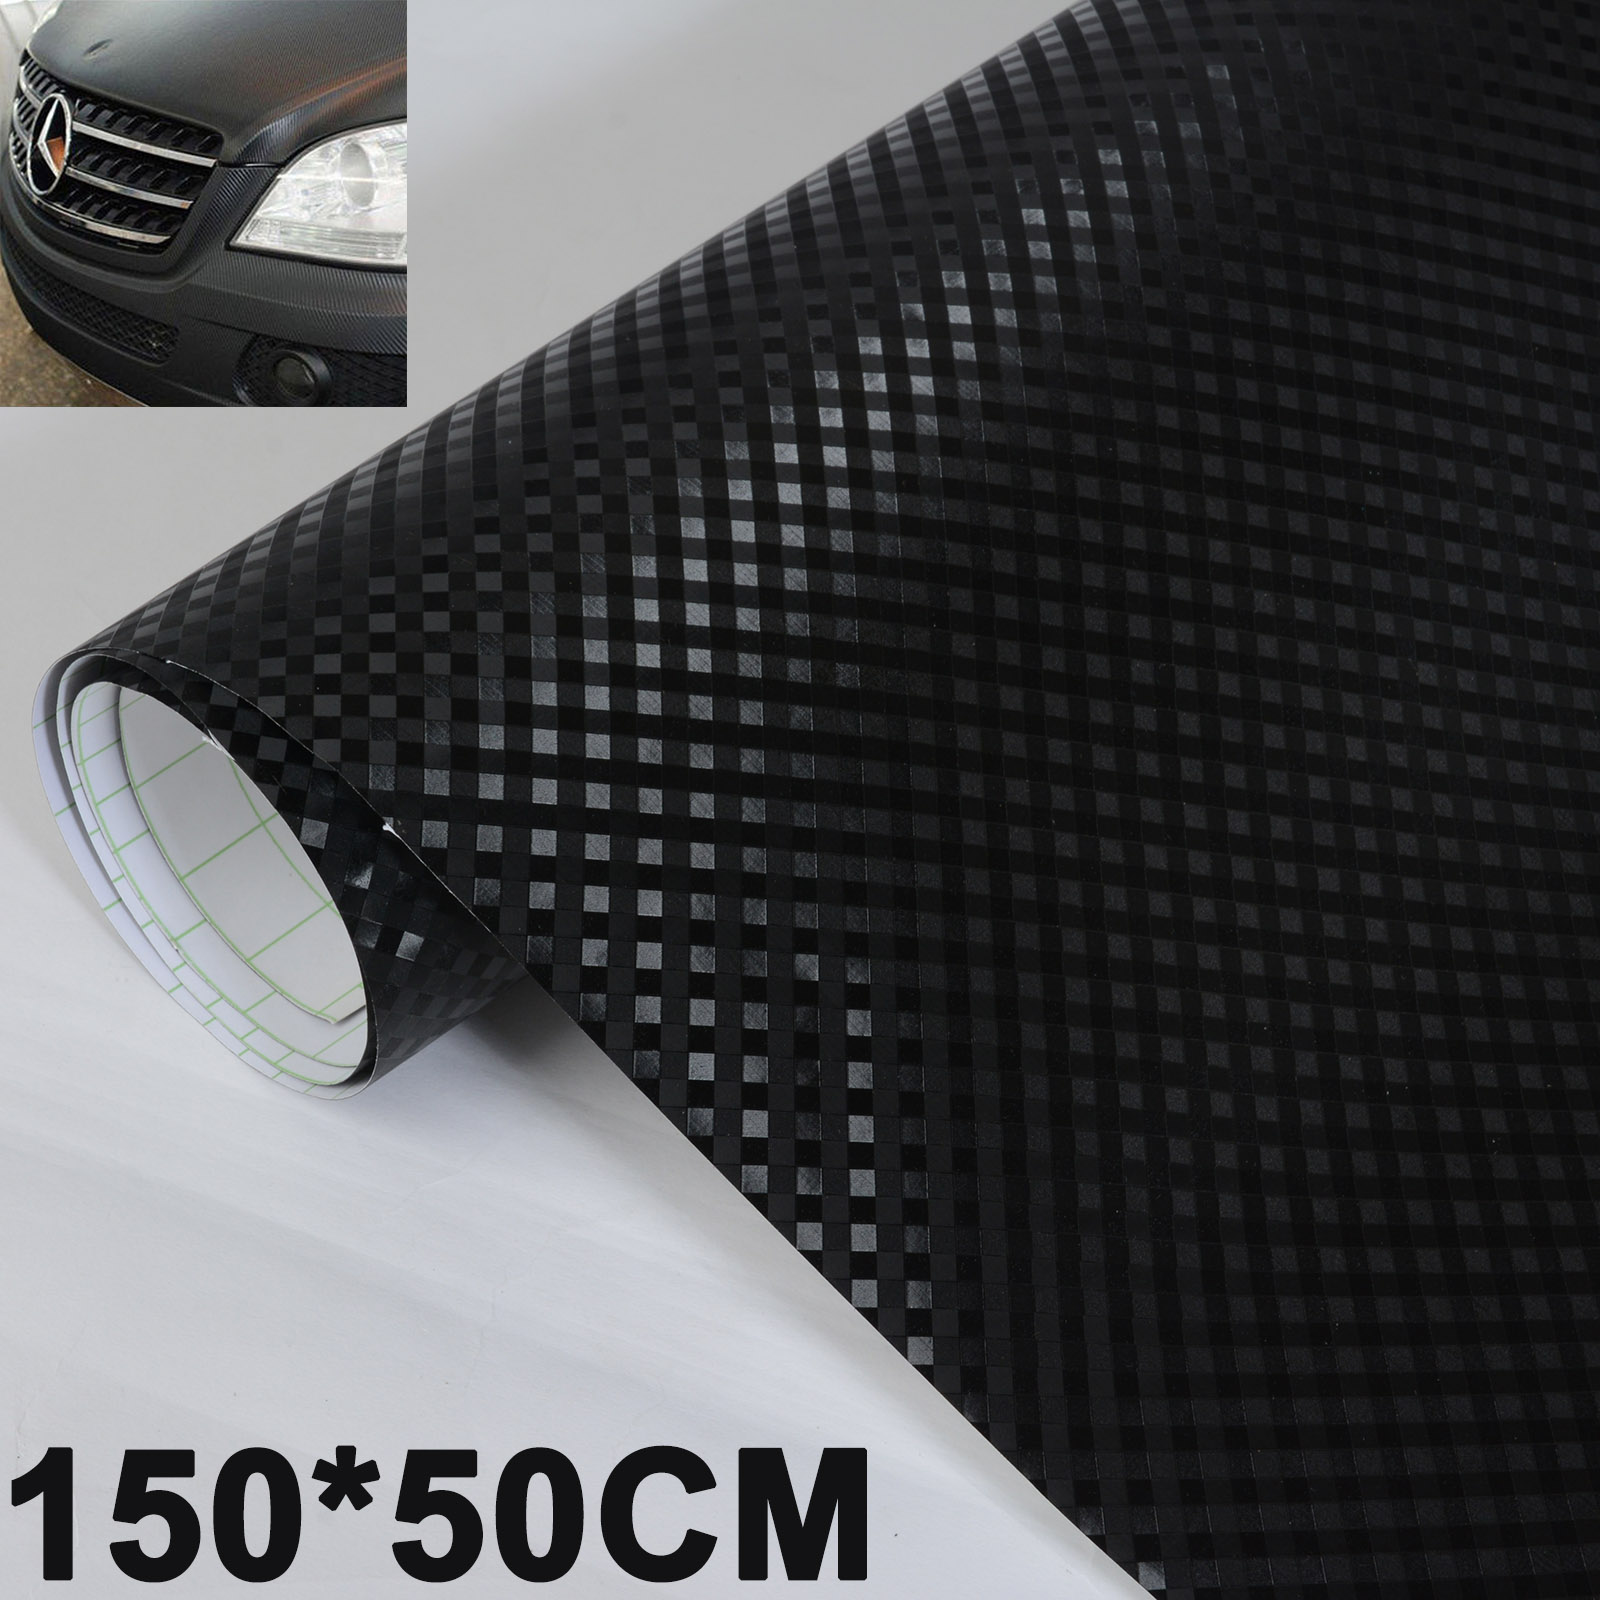 1pc 150*50CM 3D Carbon Fiber Car Vinyl Wrap Sheet Roll Film Decal Cool Black Carbon Fiber sticker for Car Sticker 2 3 4 5pcs icr 3 7v 16500 17500 rechargeable lithium ion battery li ion cell 1200mah for led flashlight torch and speaker